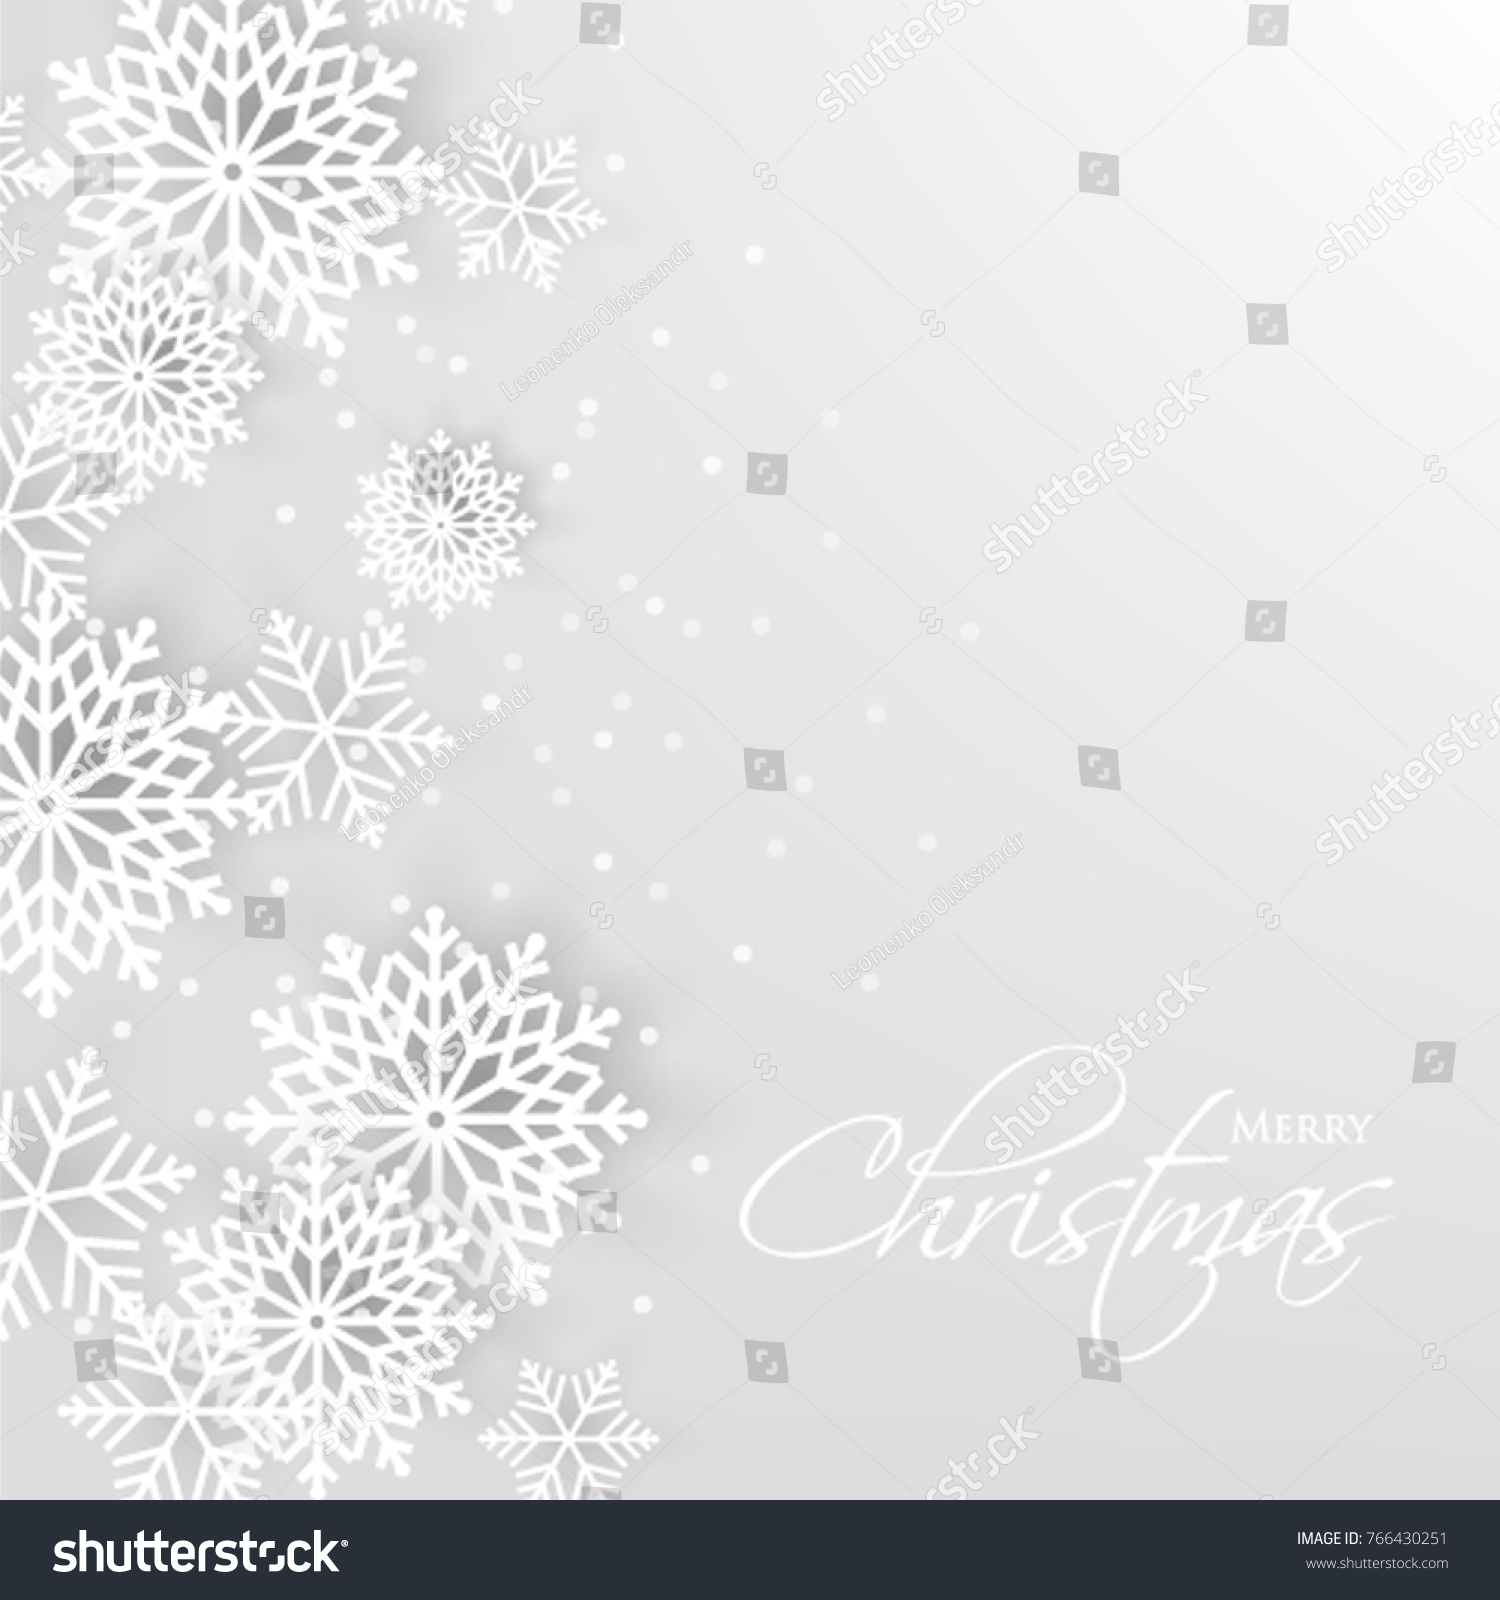 Merry Christmas Party Invitation Template Snowflake Stock Vector - Snowflake party invitation template